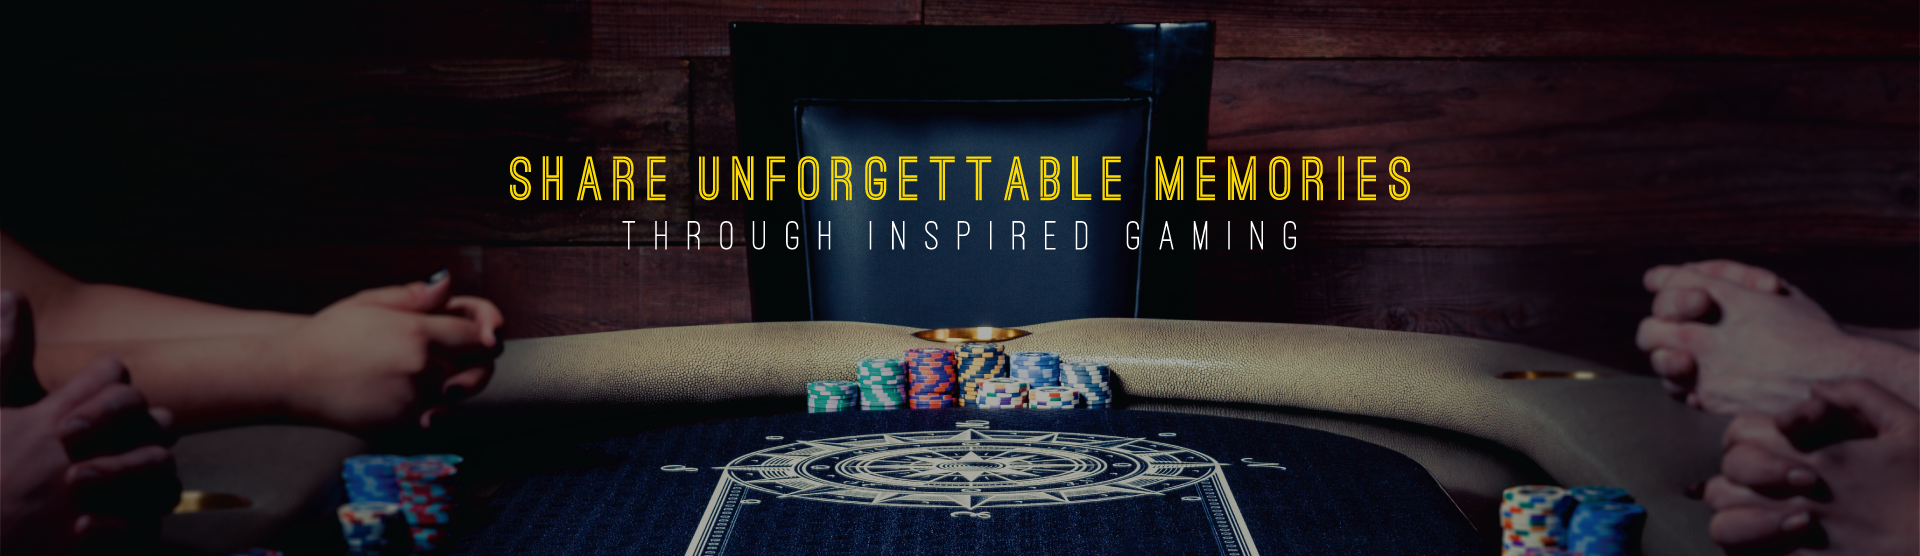 share unforgettable memories through inspired gaming